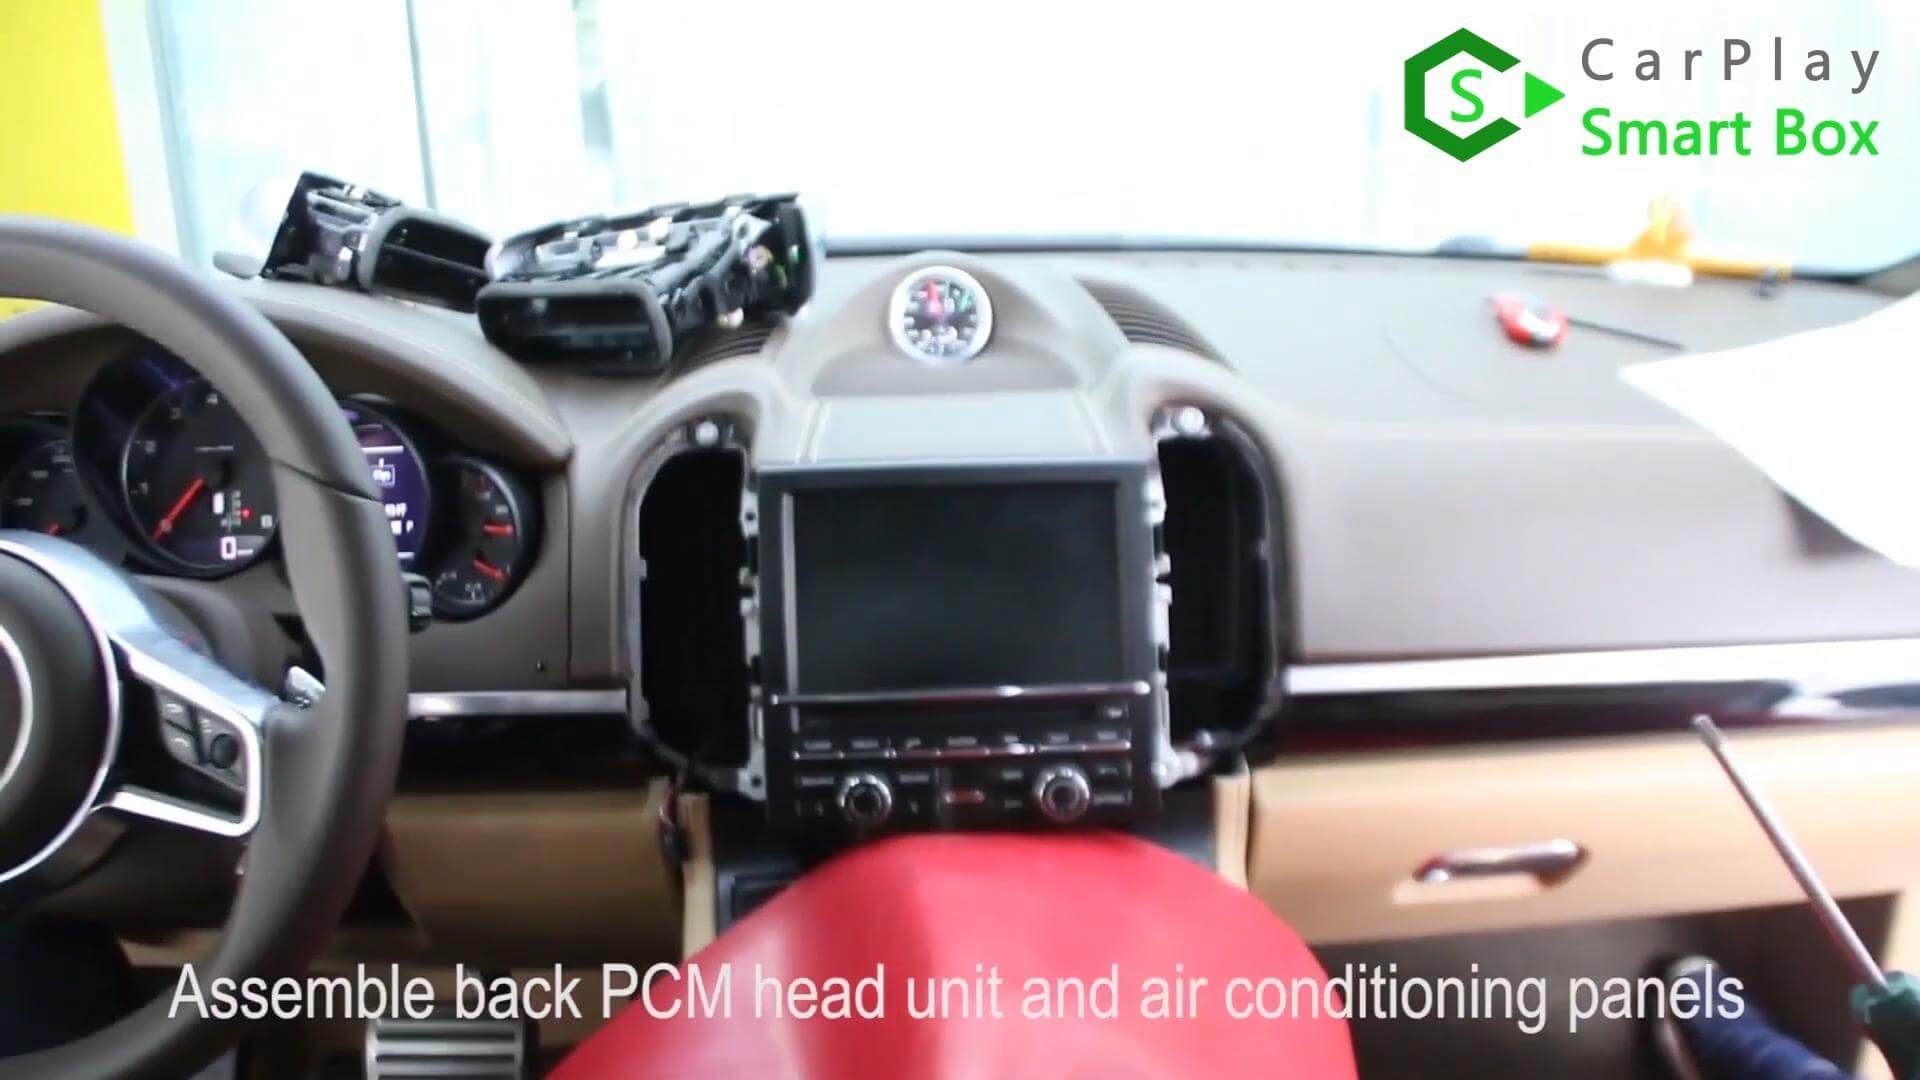 16. Assemble back PCM head unit and air conditioning panels -  Step by Step Retrofit Porsche Cayenne PCM3.1 WIFI Wireless Apple CarPlay - CarPlay Smart Box